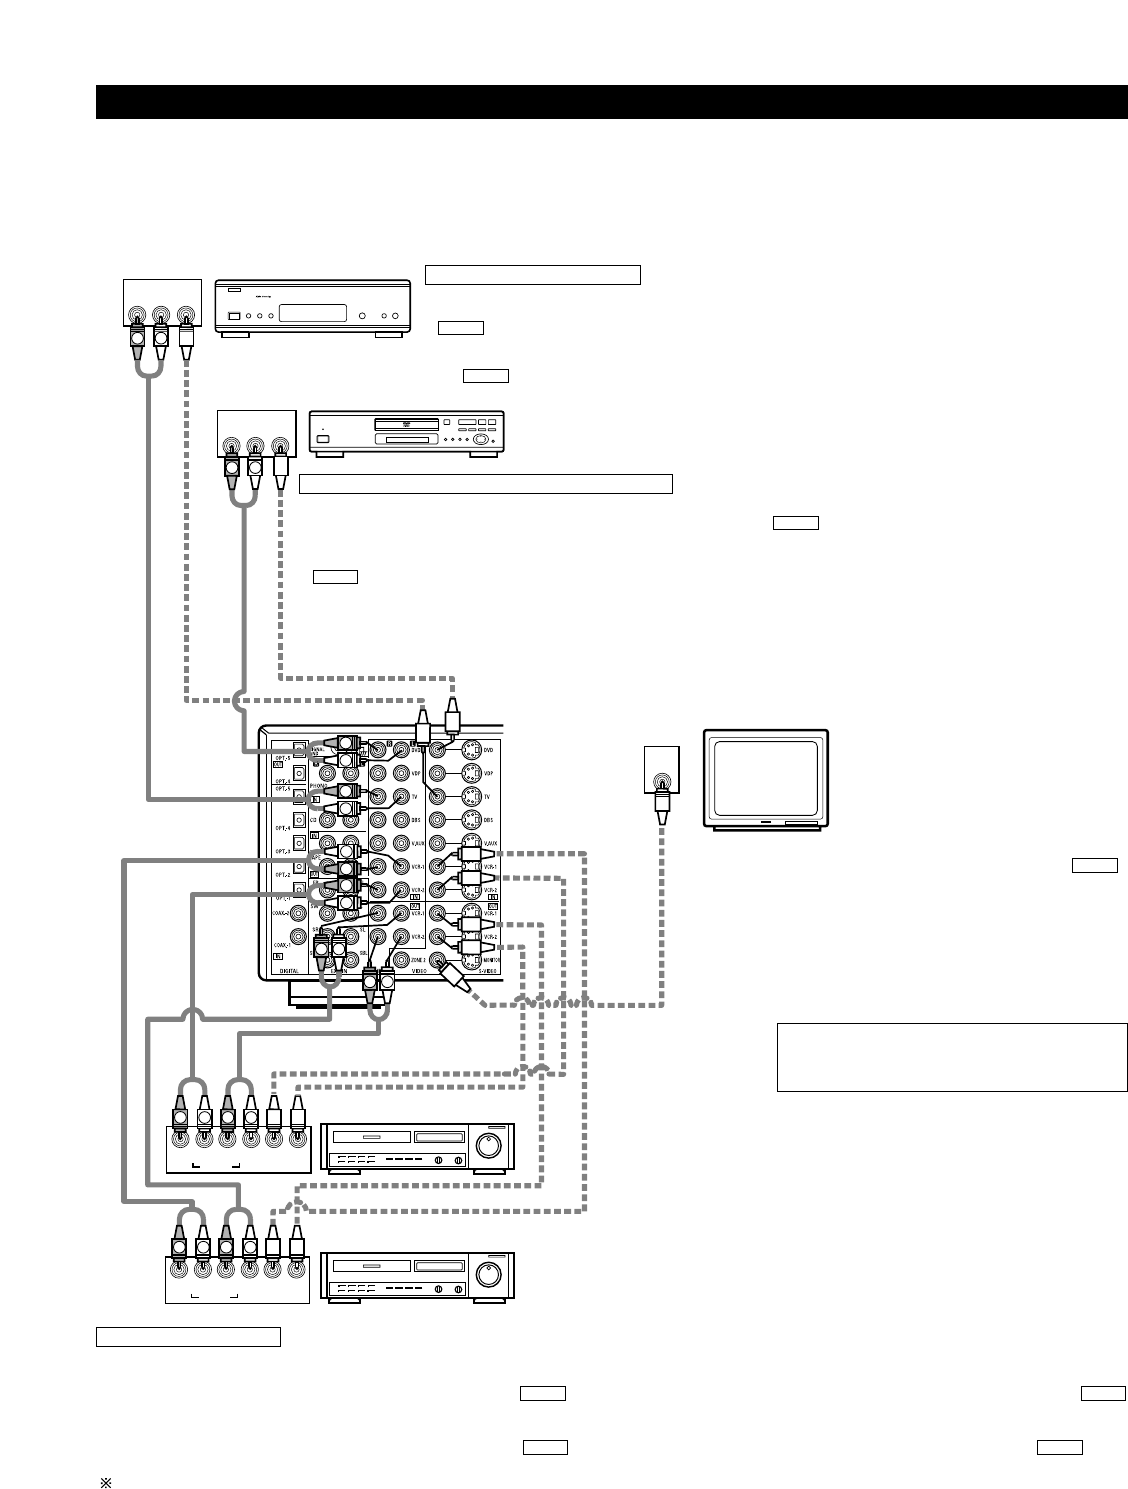 Page 7 of Denon Stereo System AVR-3803 User Guide